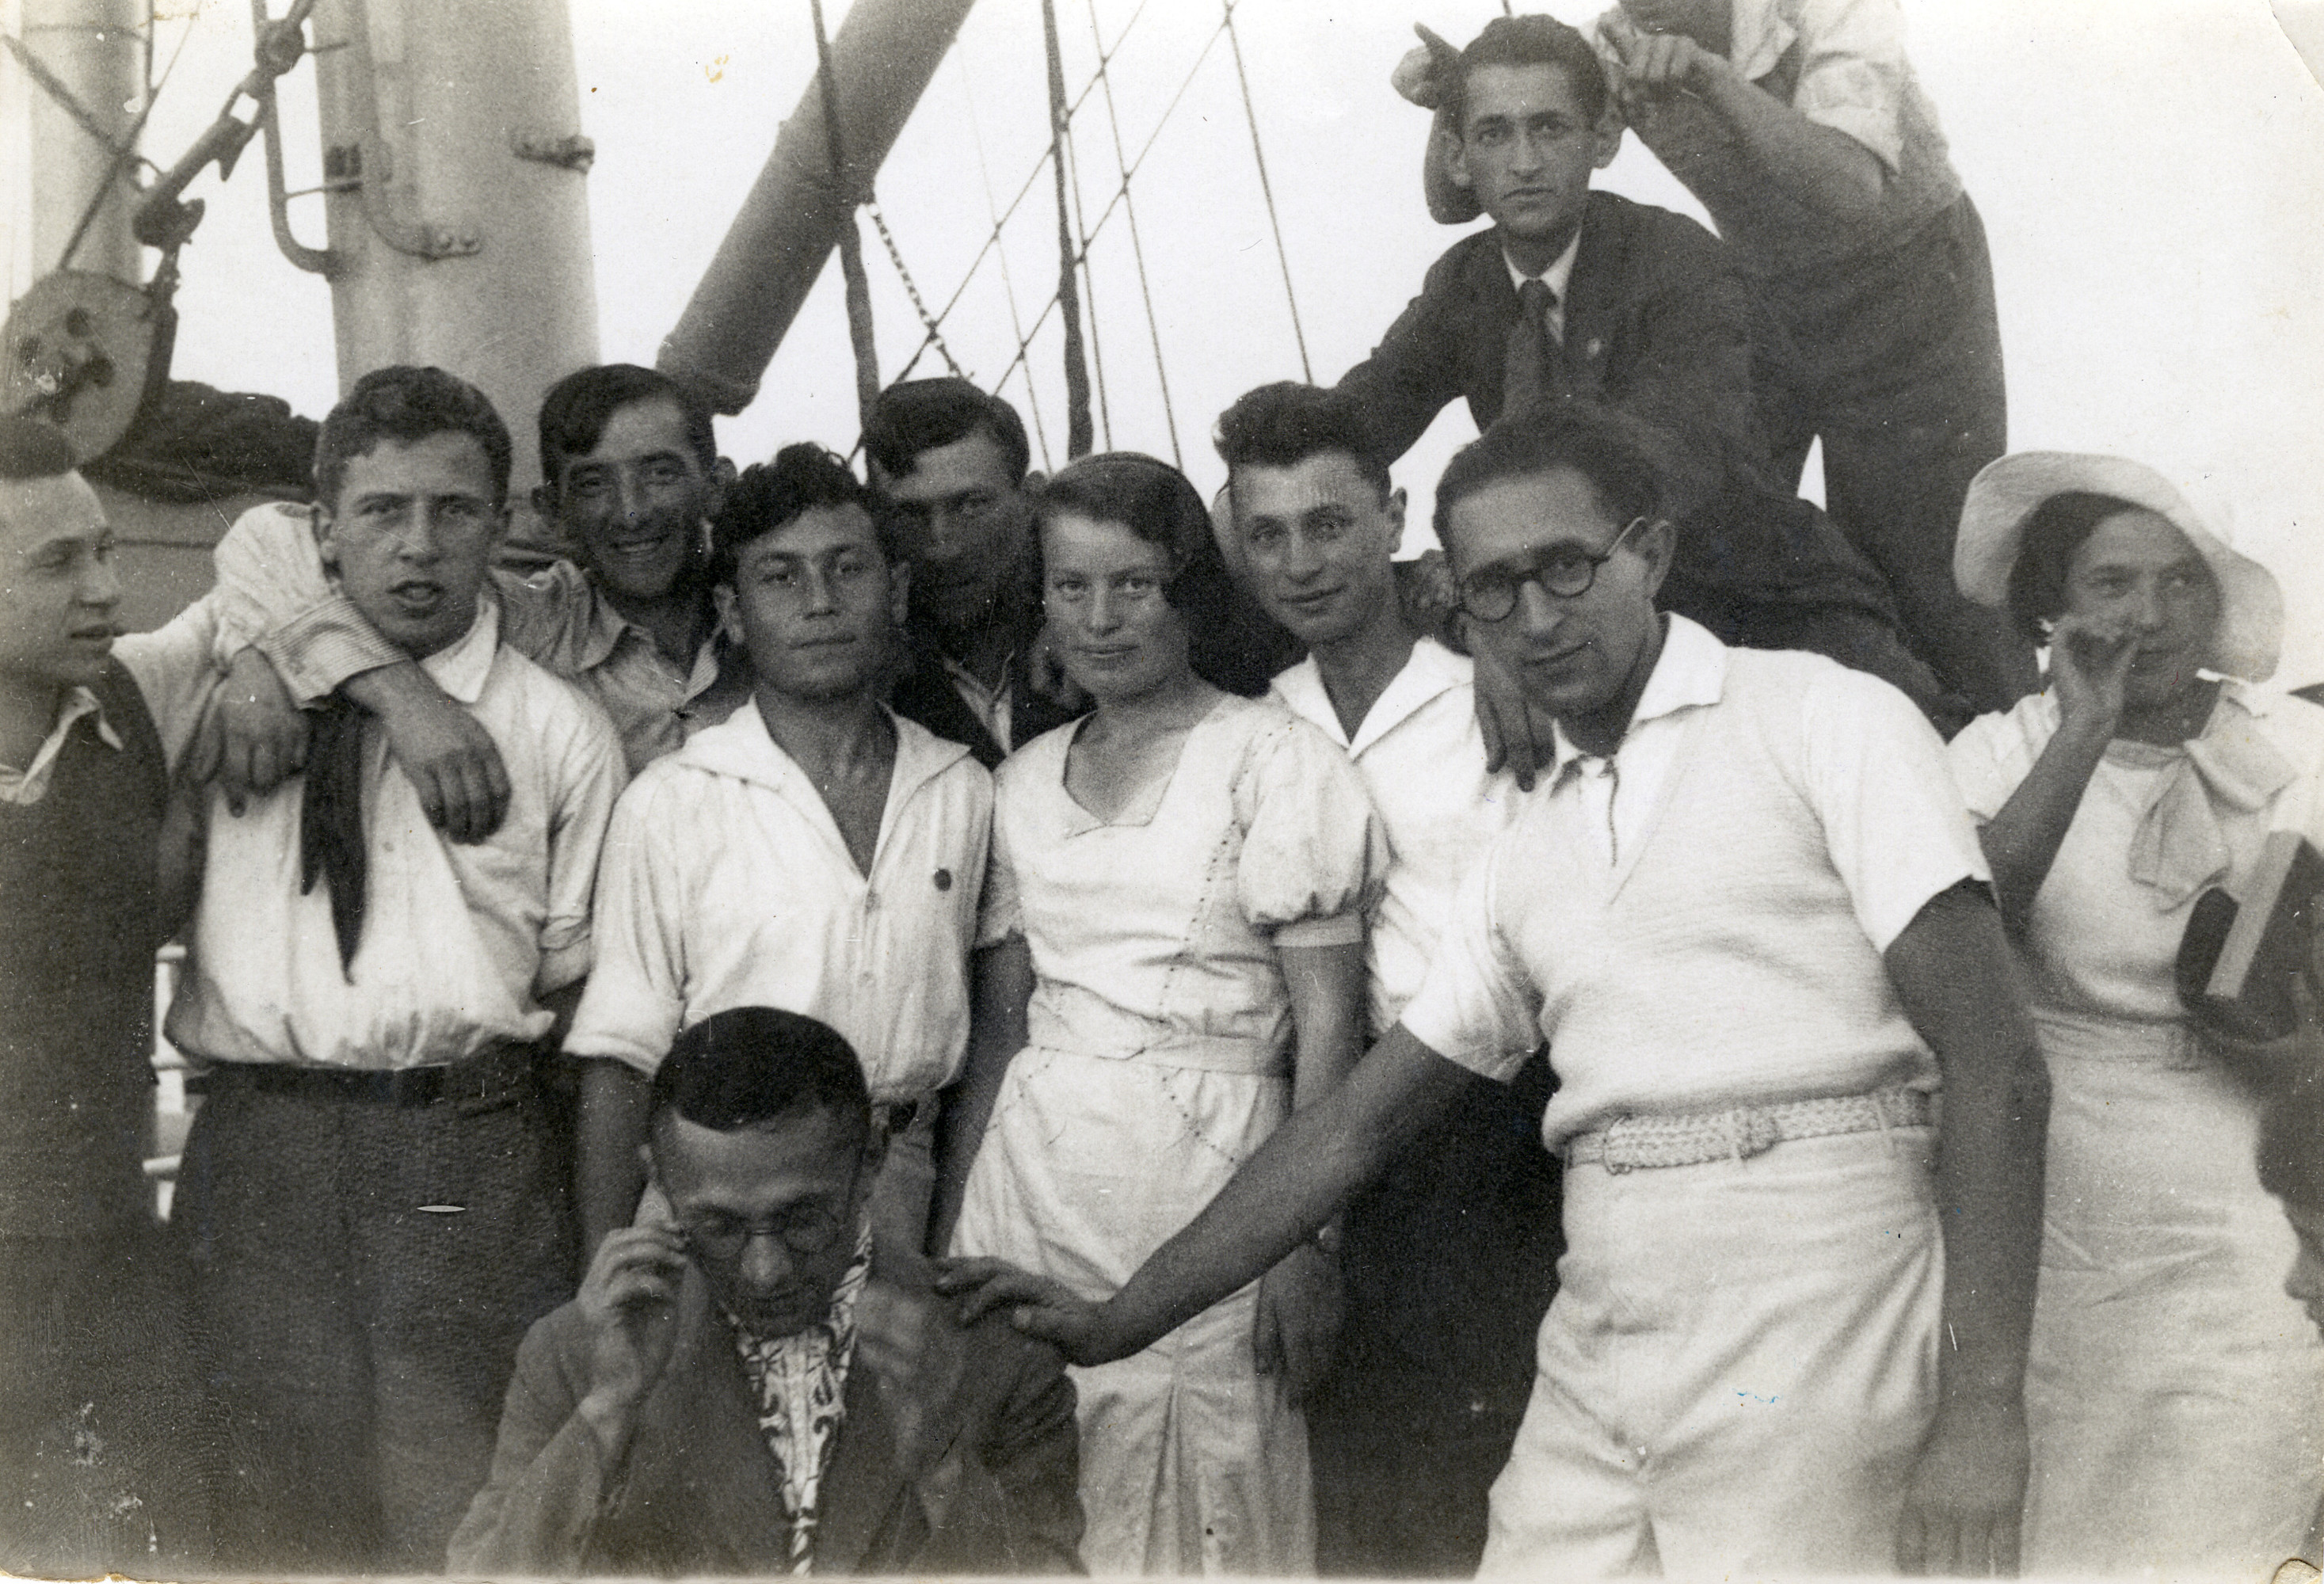 Jewish immigrants leave for Palestine on board the Polonia.  Among those pictured is Israel Virshup (second row, second from the left).